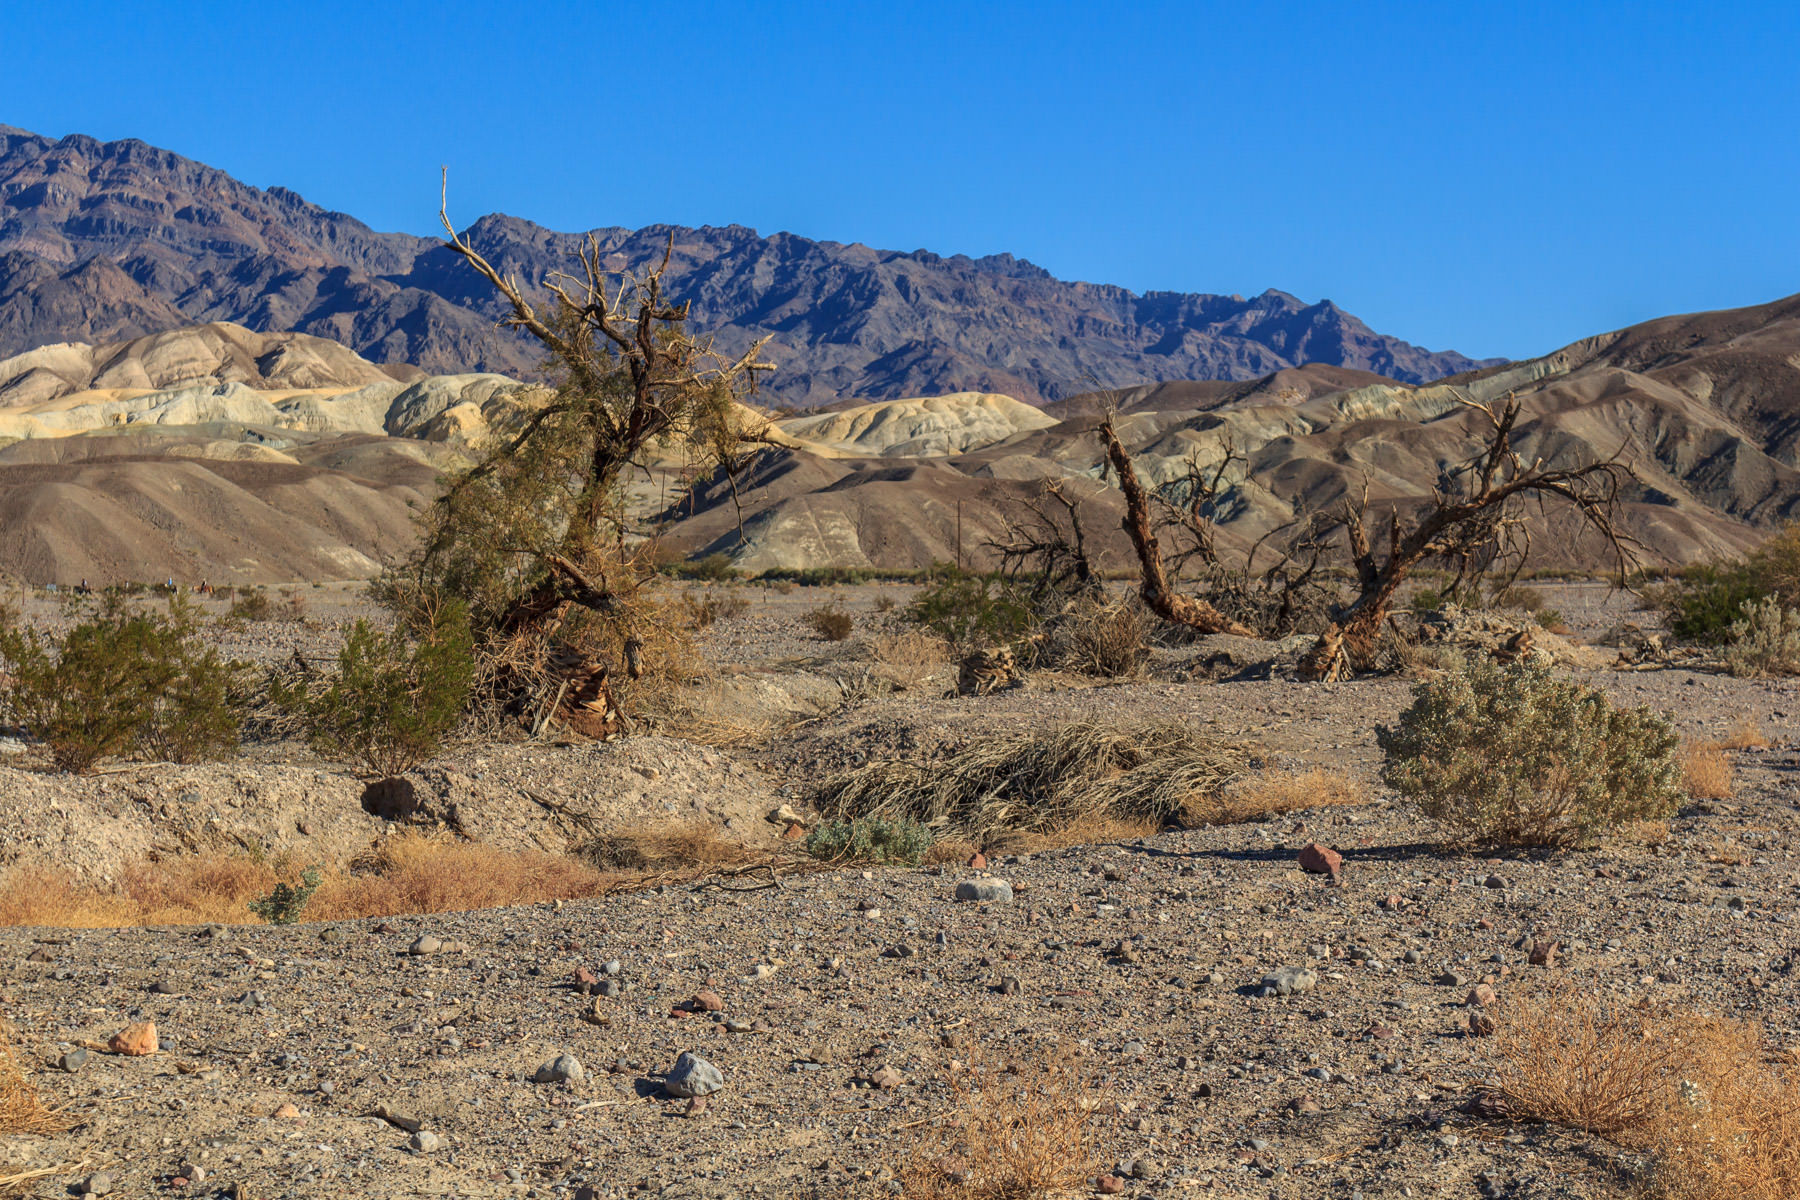 Weathered brush bakes under the desert sun at Death Valley, California.